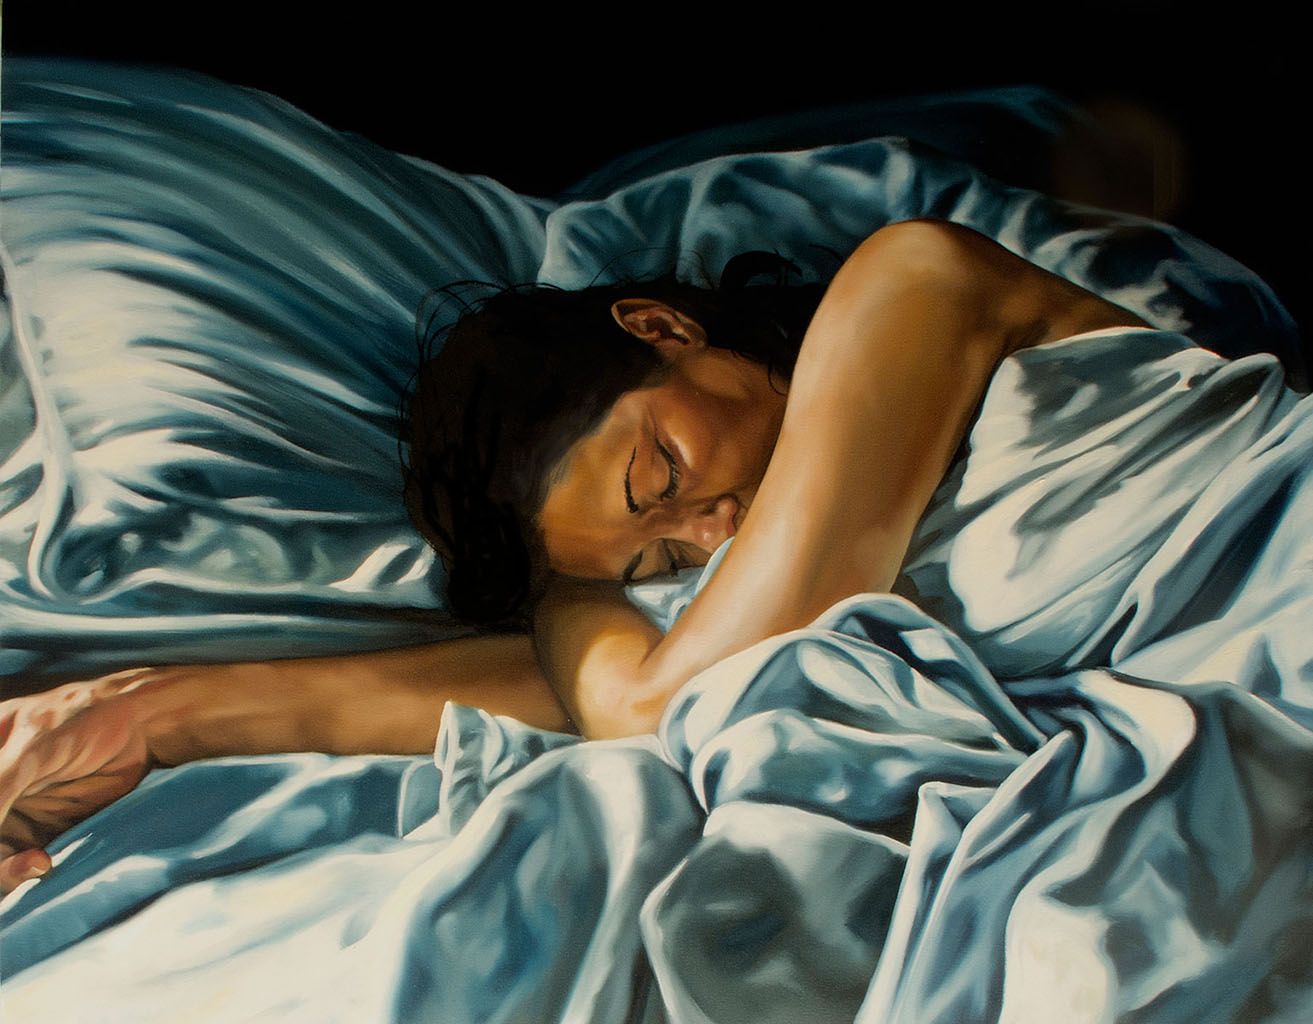 Эрик Зенер (Eric Zener), Full Moon (Sleep)